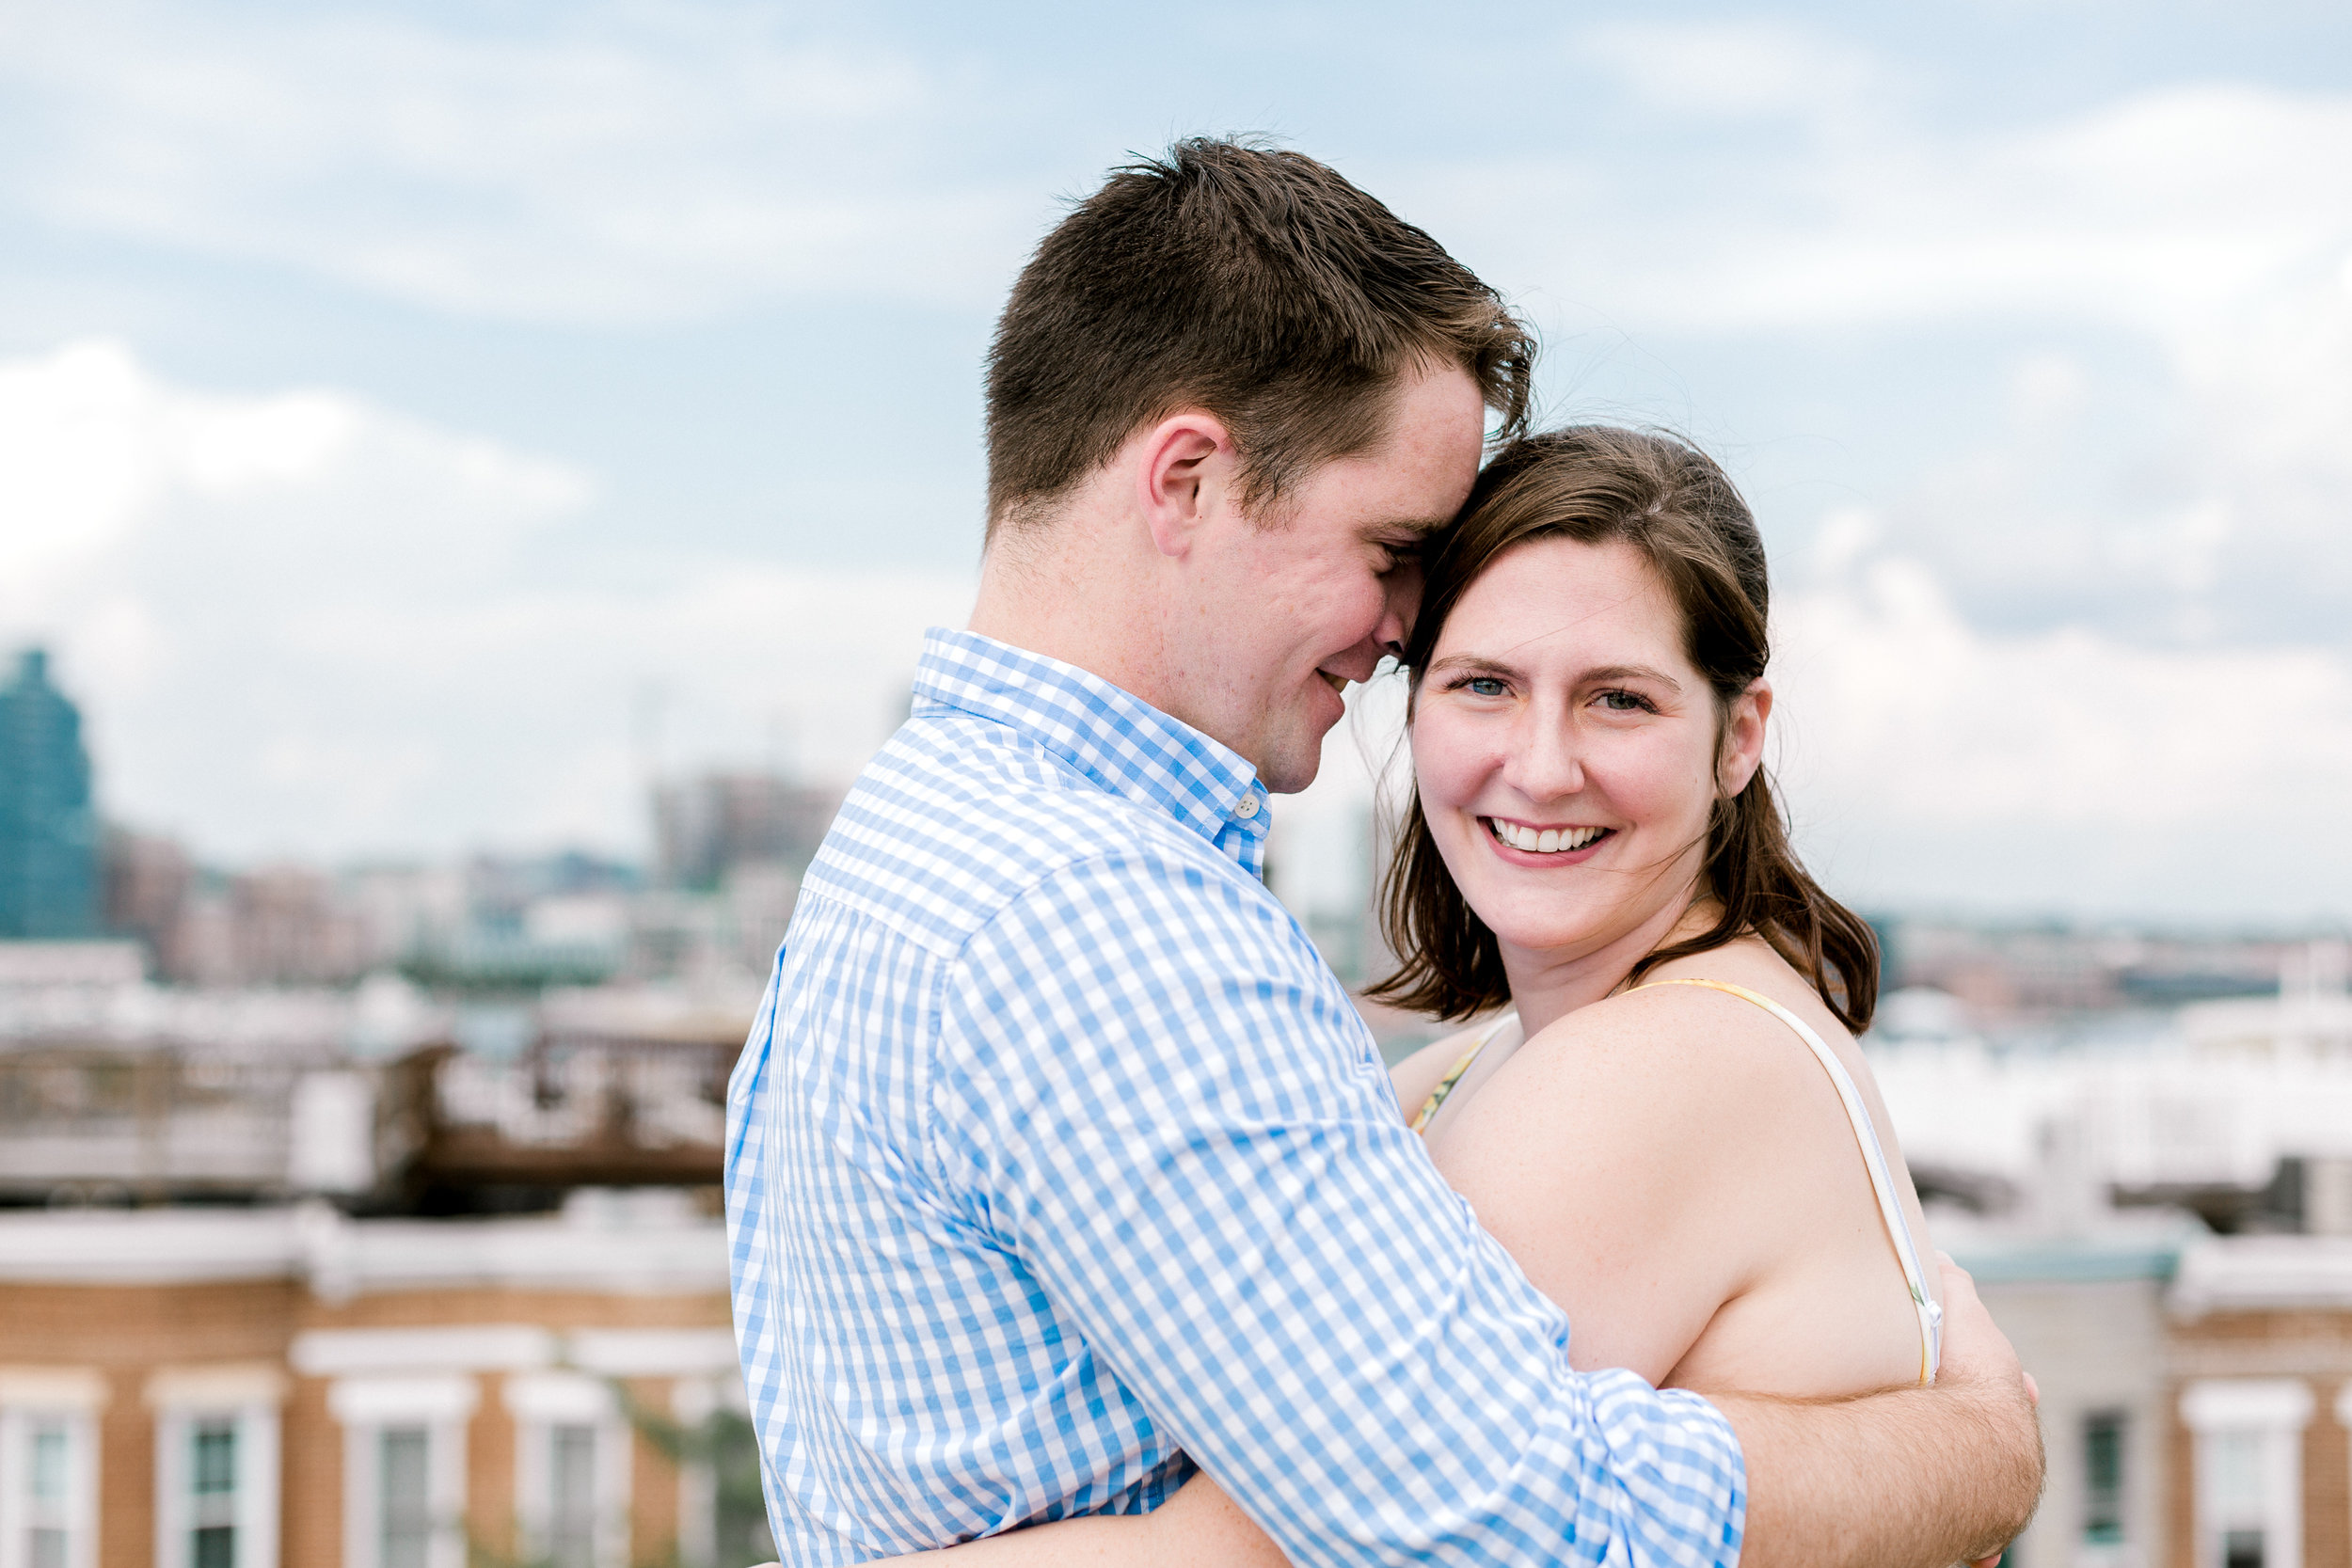 Baltimore Federal Hill Park Stormy Engagement Session Lytle Photo Co (36 of 92).jpg